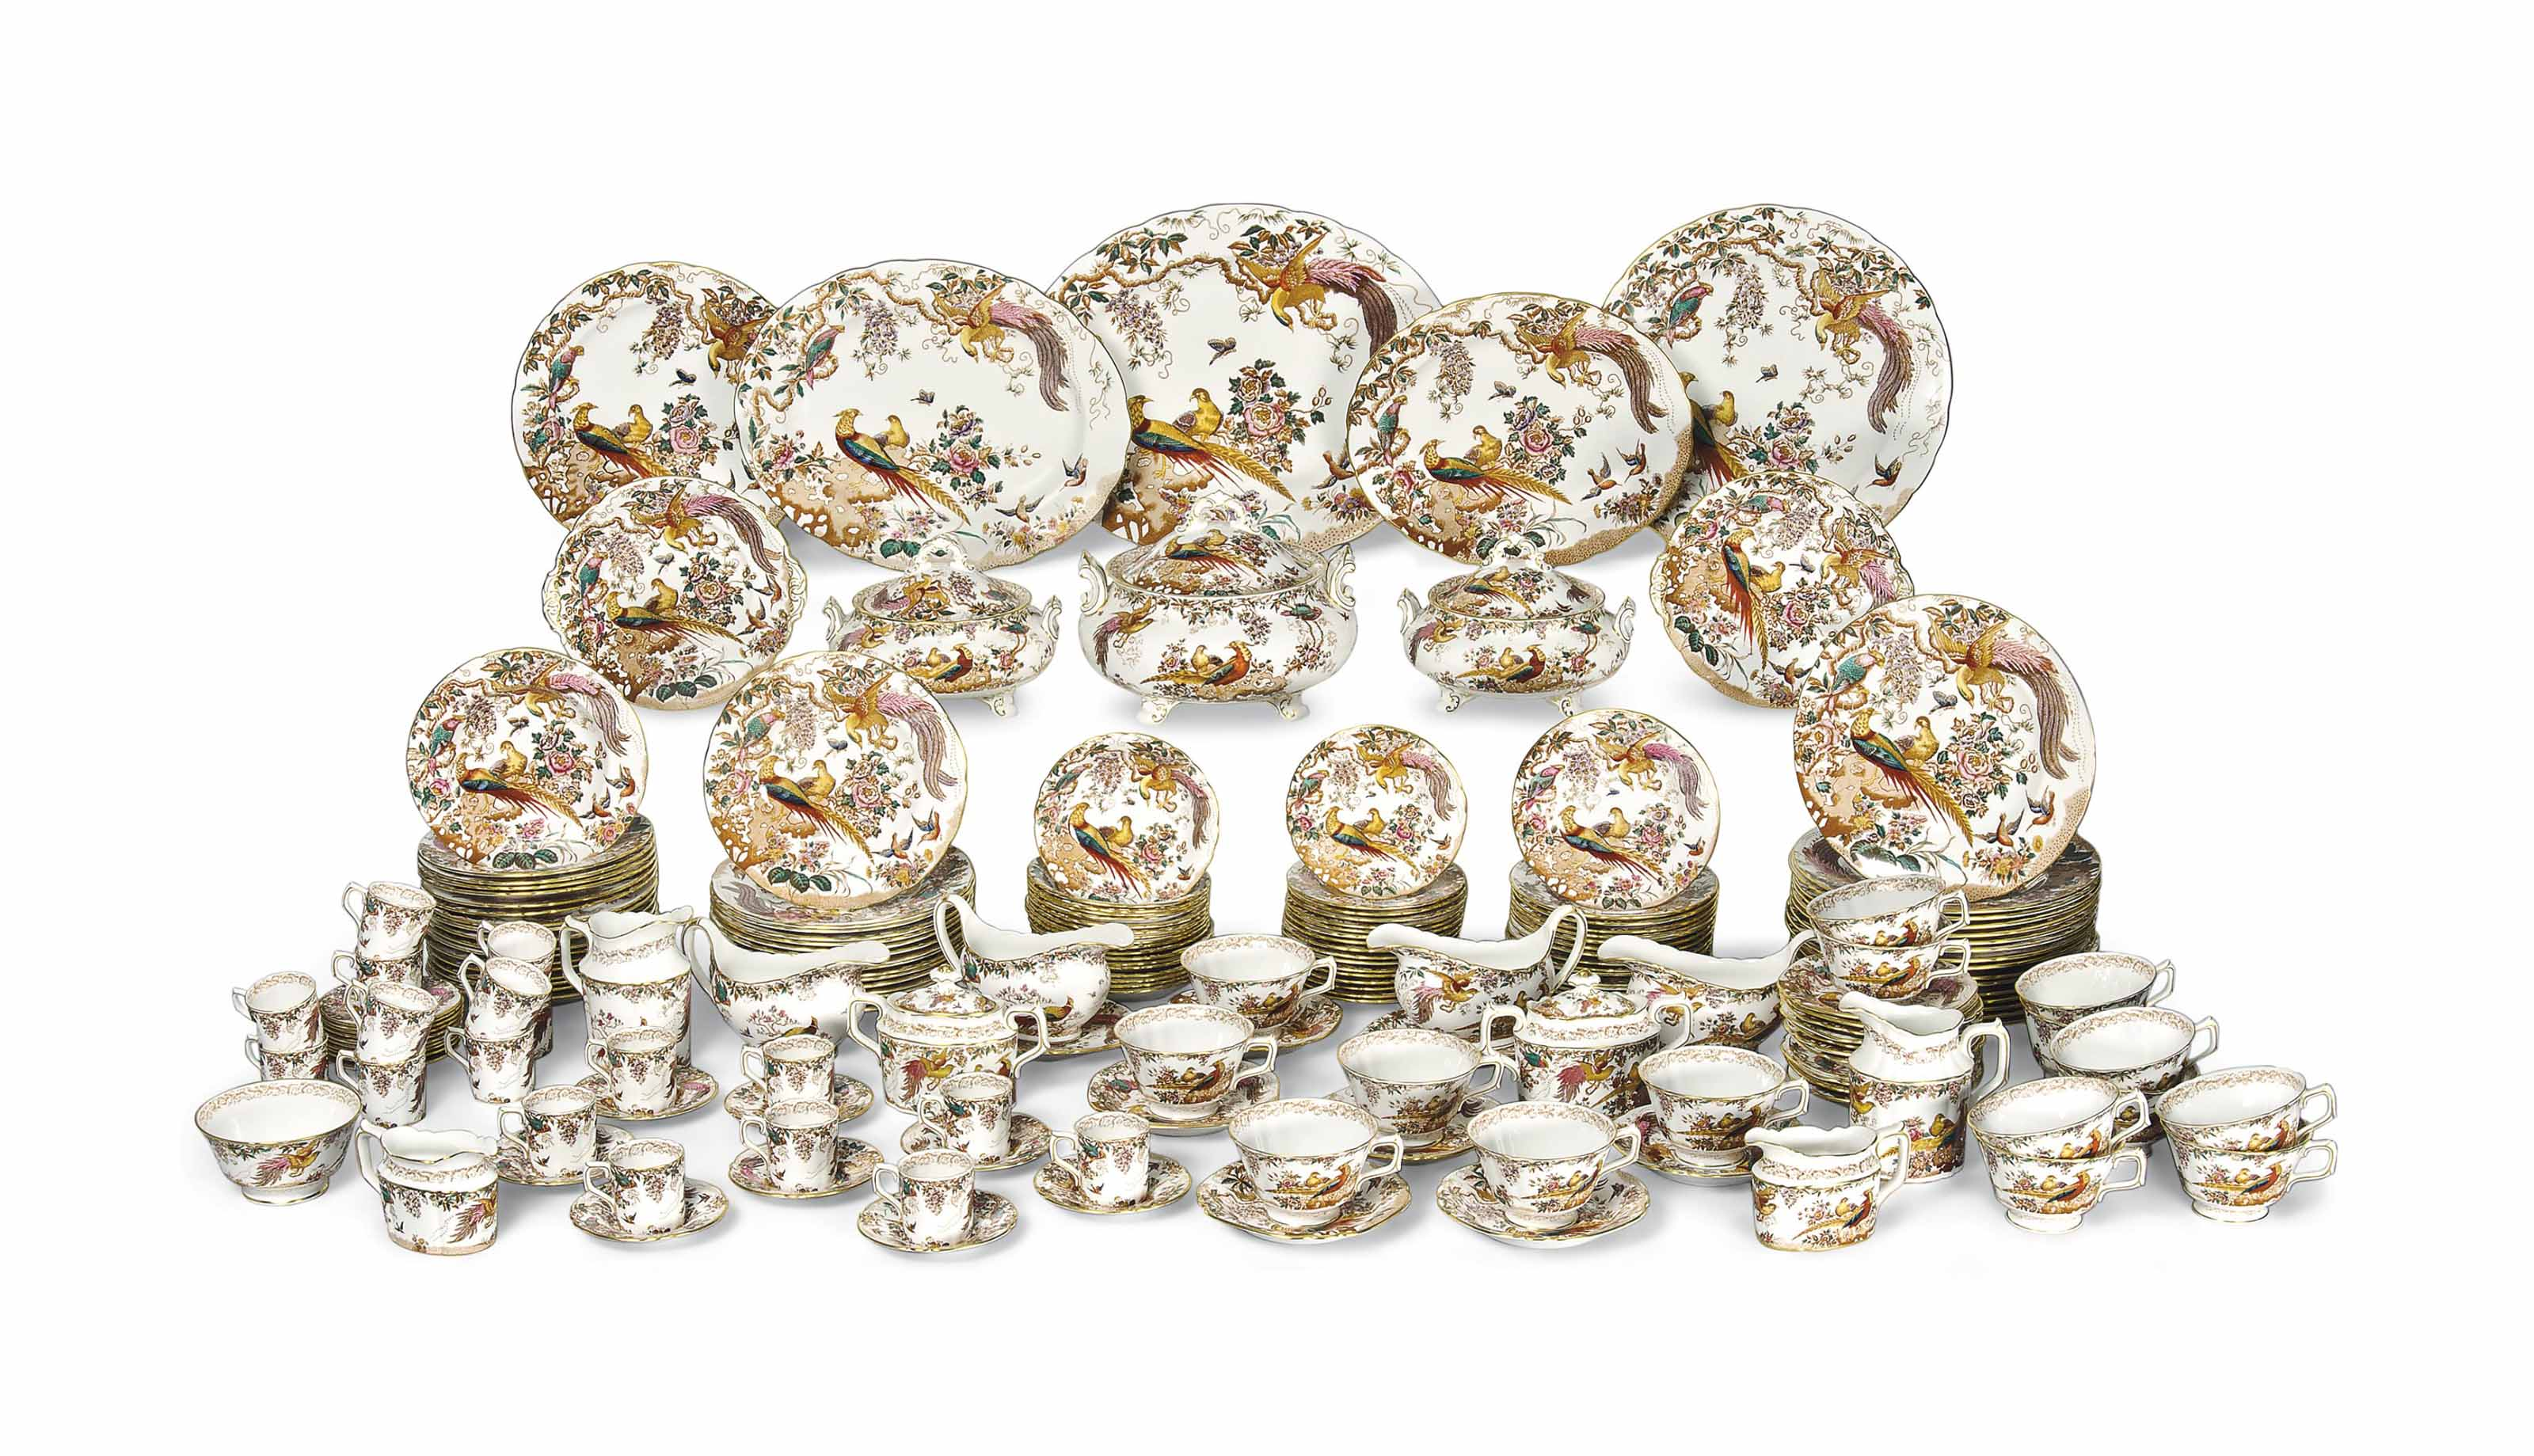 AN EXTENSIVE ROYAL CROWN DERBY 'OLDE AVESBURY' PATTERN DINNER, TEA AND COFFEE-SERVICE